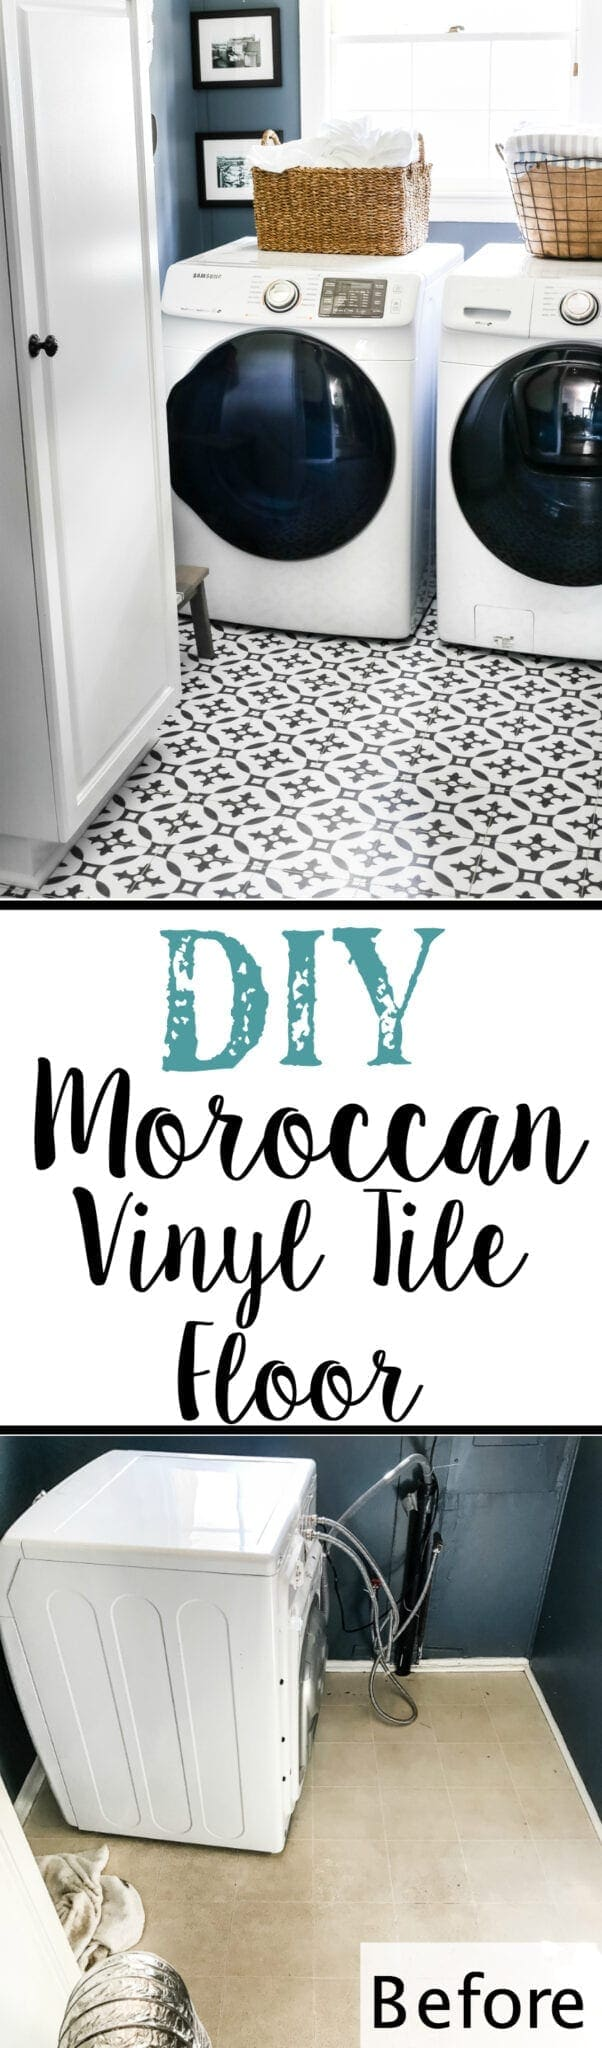 Diy moroccan vinyl tile floor blesser house diy moroccan vinyl tile floor blesserhouse a diy tutorial for how to dailygadgetfo Gallery